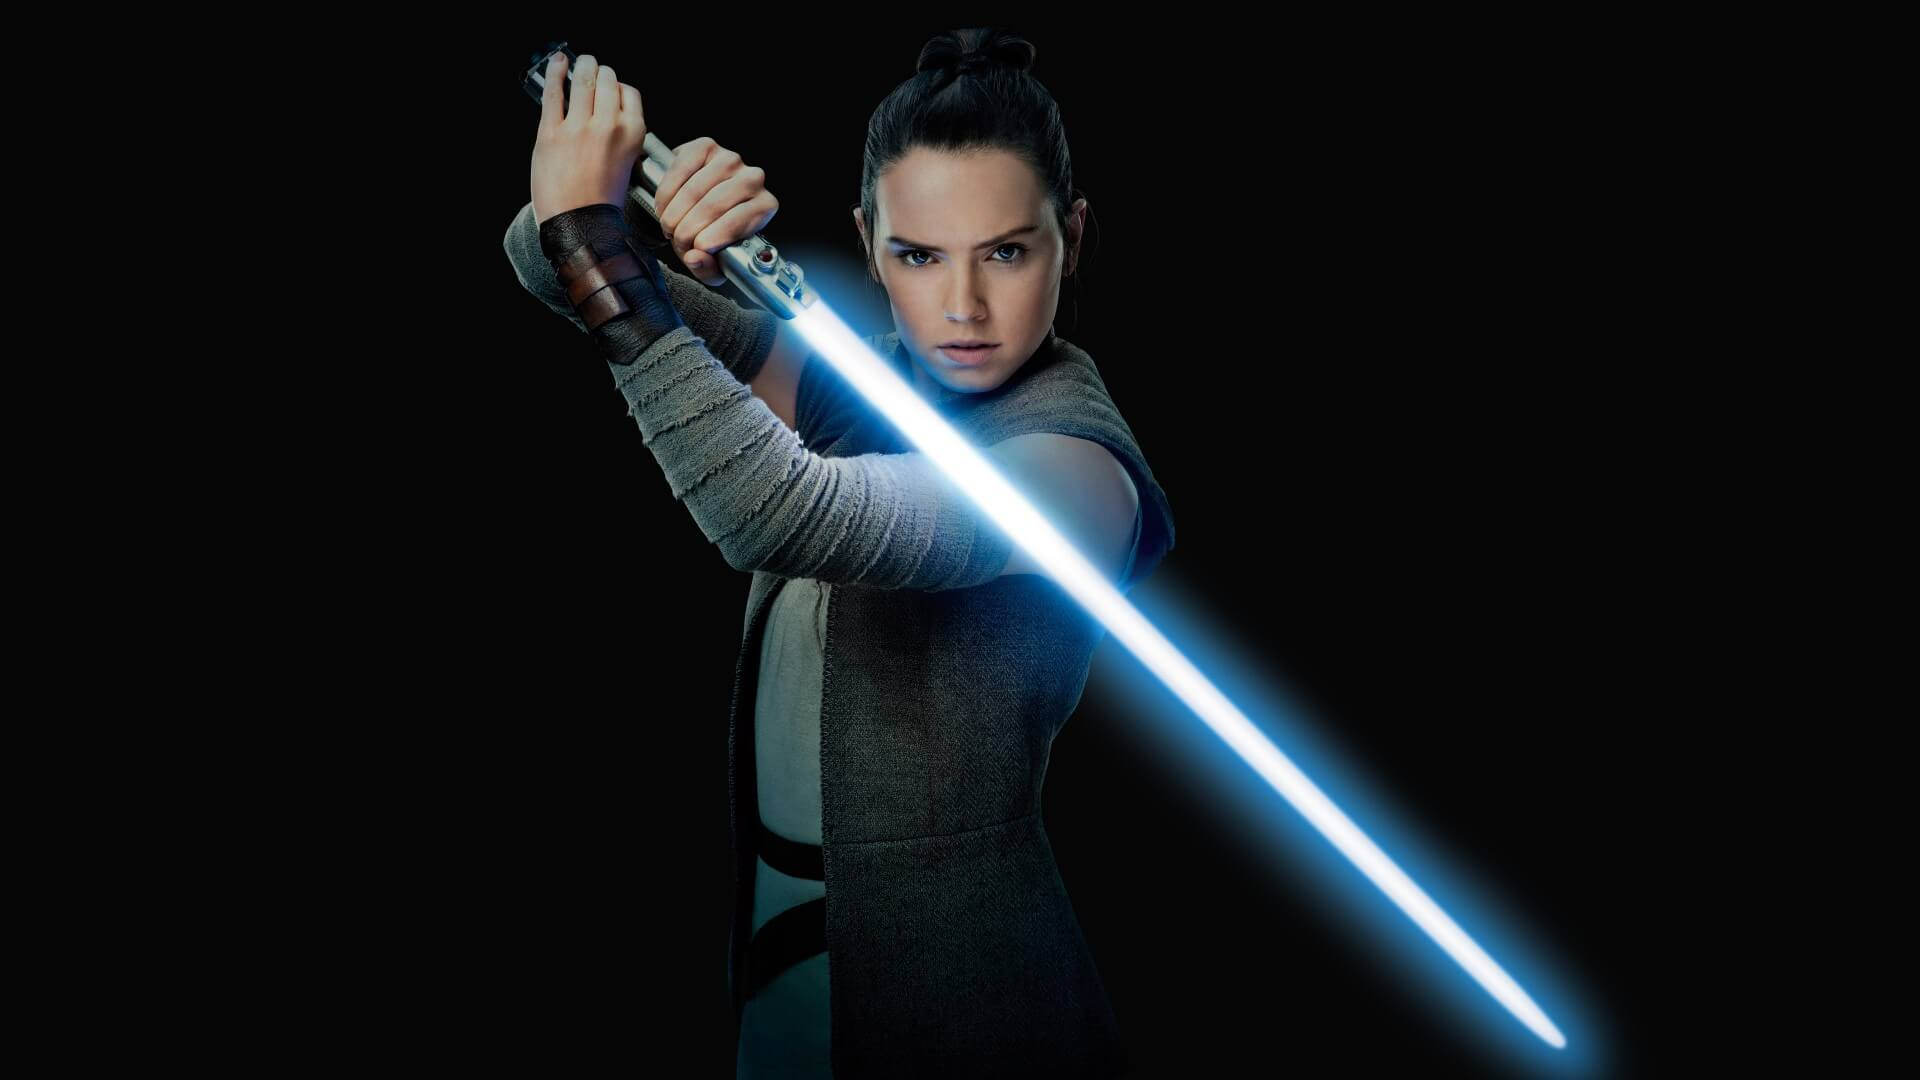 Star Wars Episode 9 Trailer Reportedly Drops in April ... - photo#34